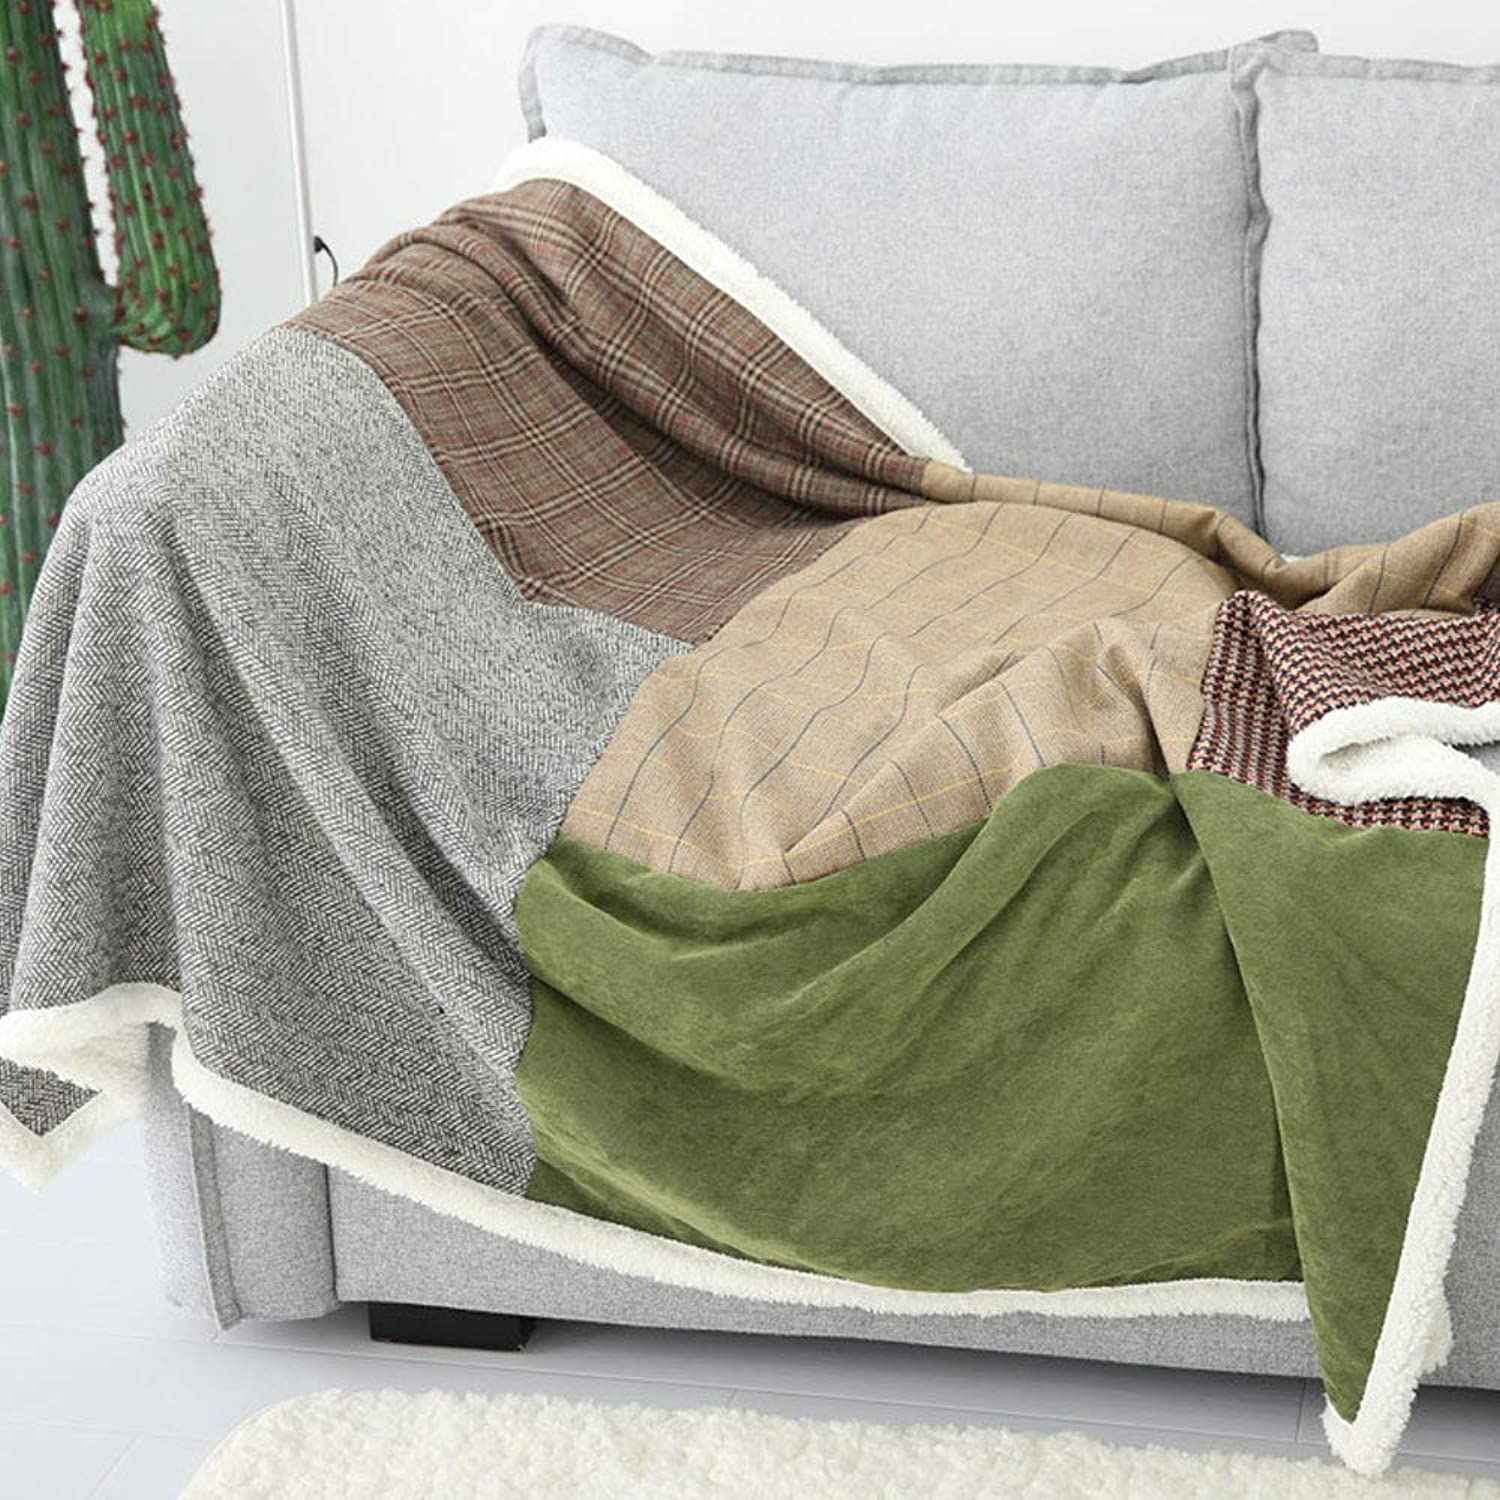 Tail Single Piece Lamb Cashmere Sofa blanket Lunch Break blanket (color   Brown, Size   51.18  62.99)